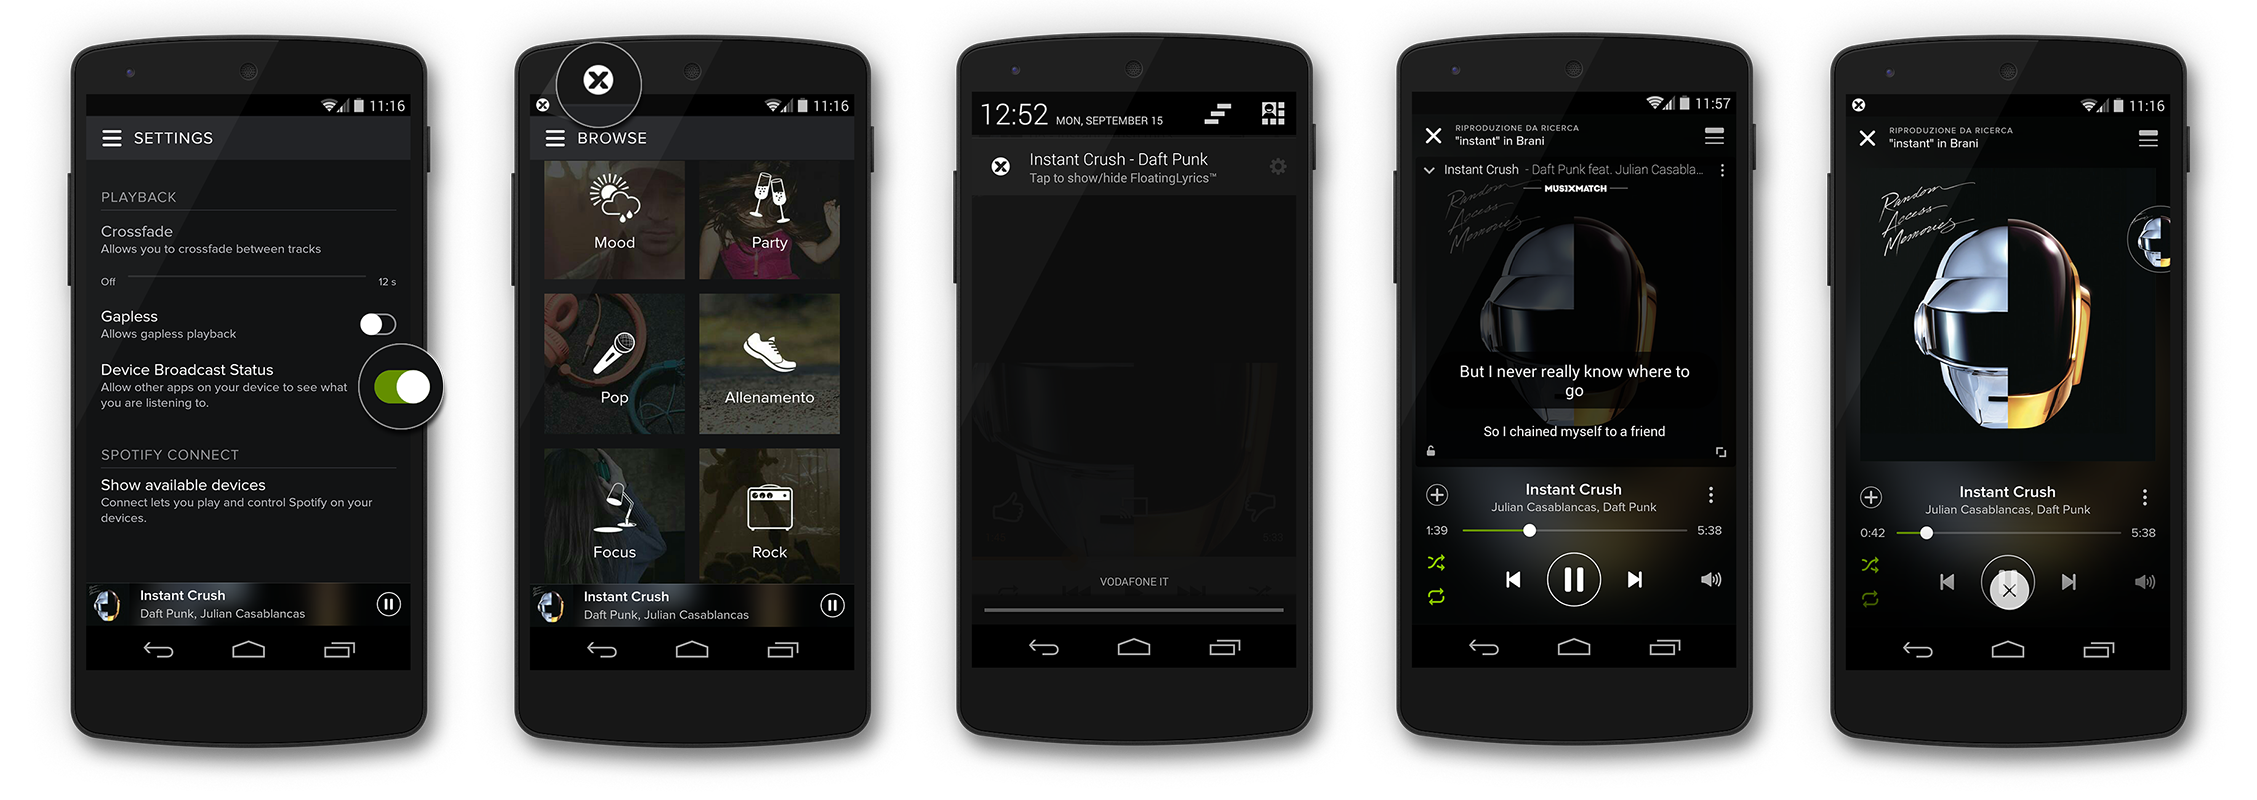 Solved: Lyrics on Spotify Android - The Spotify Community